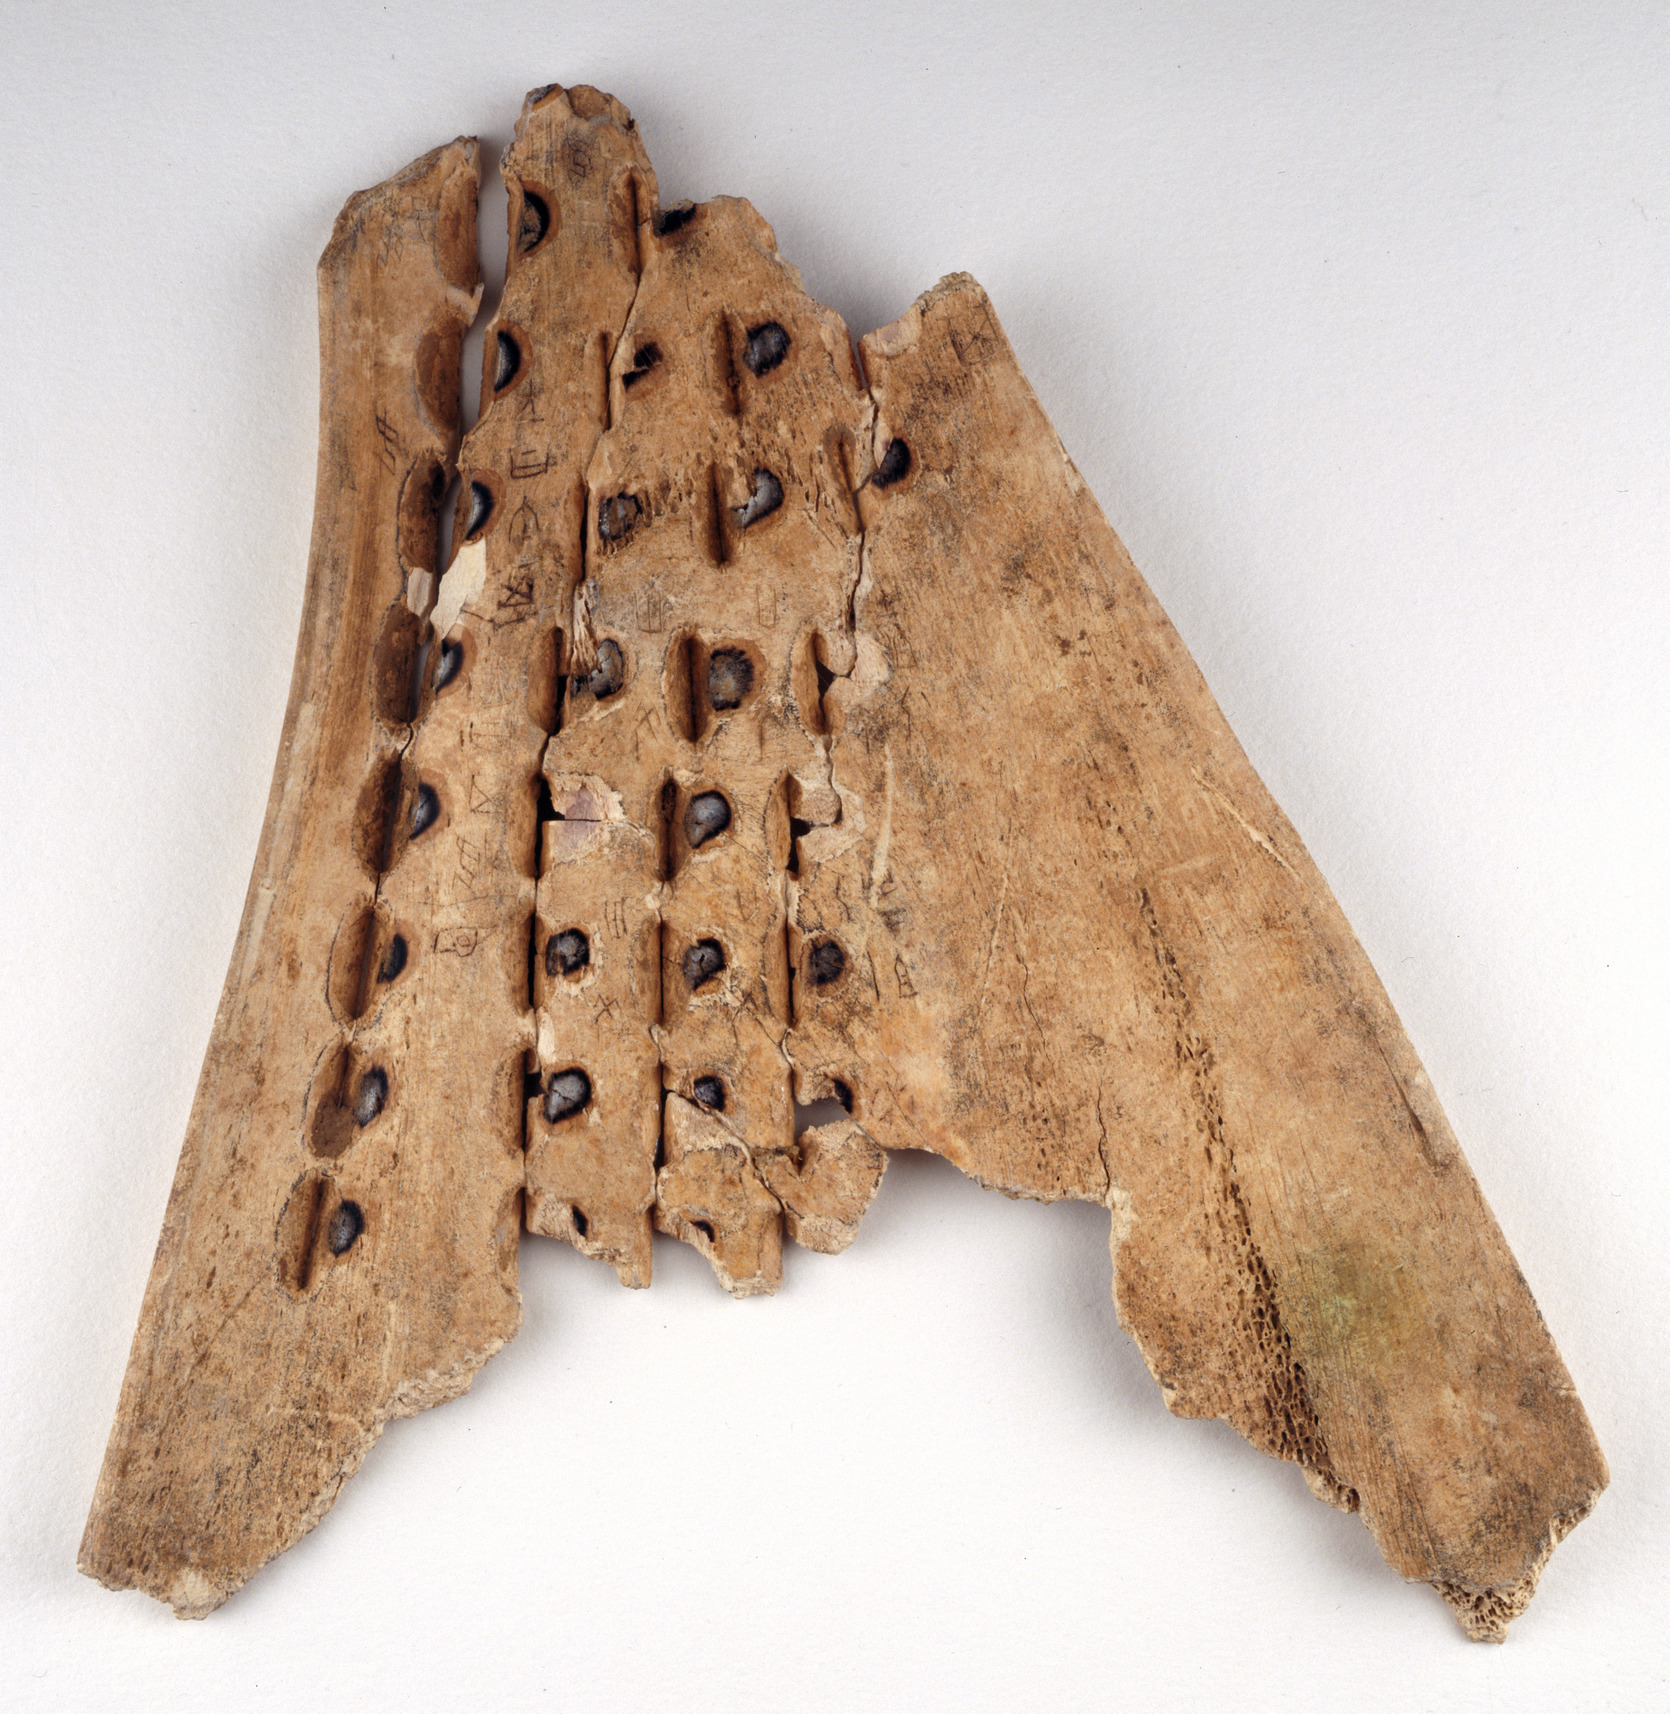 Chinese oracle bone - Diviners of the Shang dynasty (16th-10th centuries B.C.) produced oracles by reading cracks on ox bones. The pit marks were produced by a hot poker.